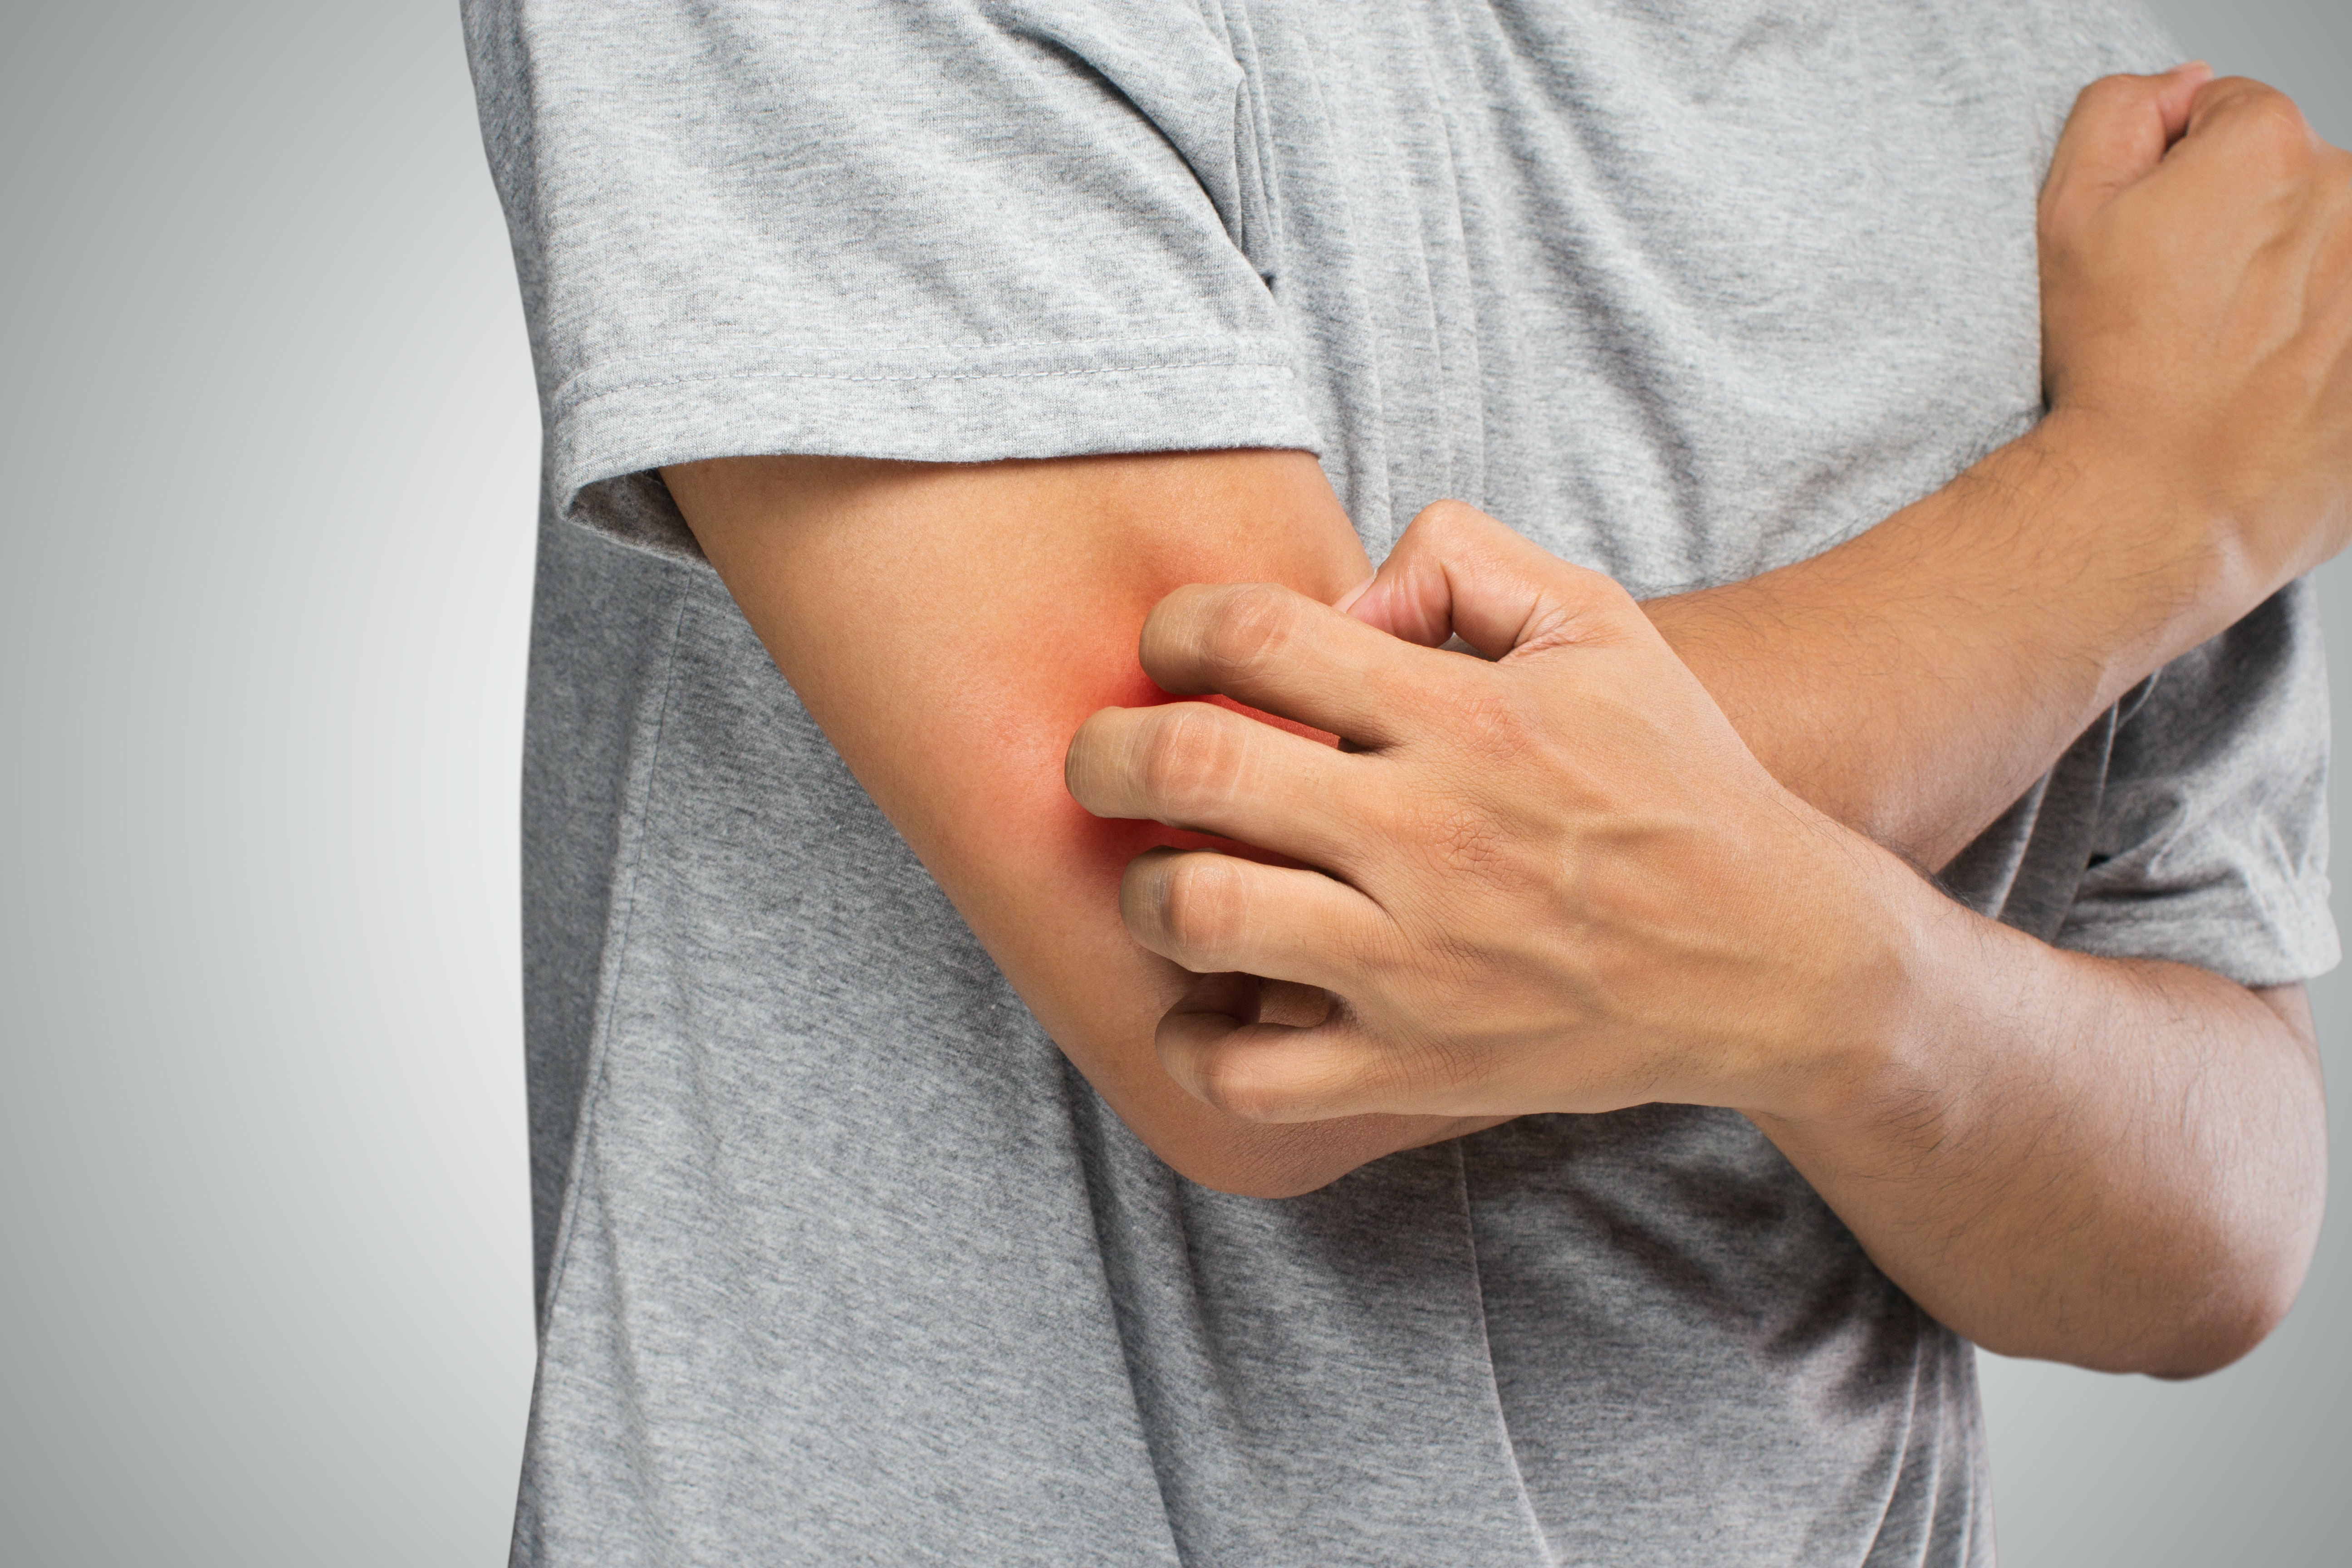 An image depicting a person suffering from elbow itch symptoms